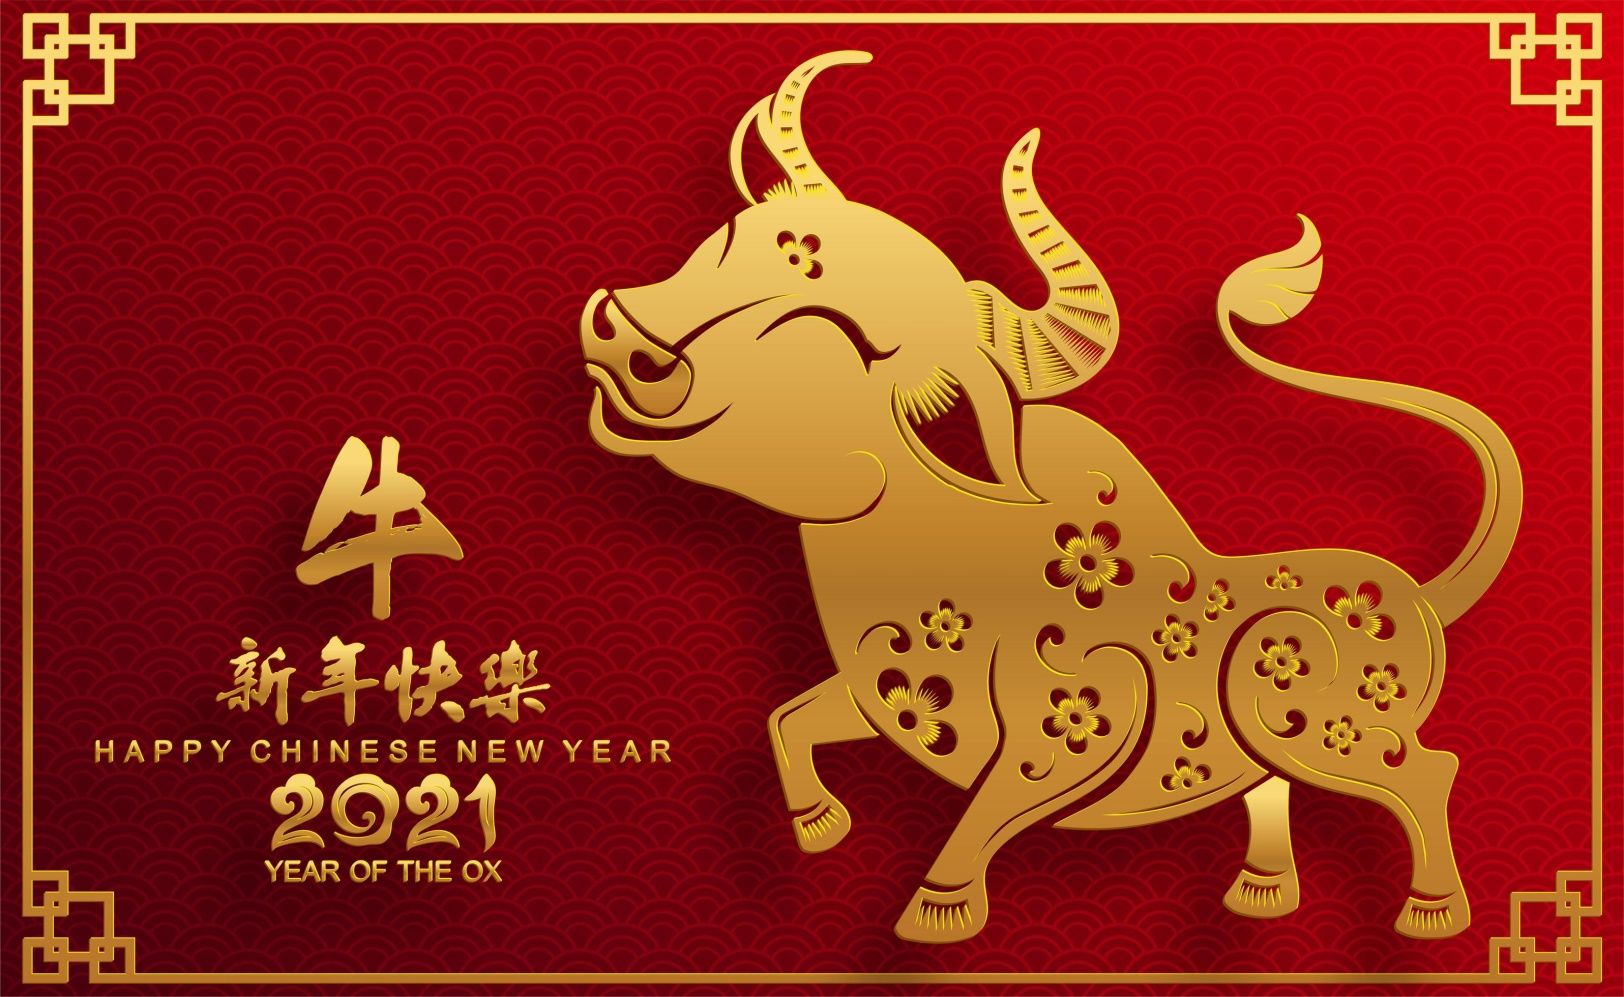 https://static.vecteezy.com/system/resources/previews/001/214/845/large_2x/chinese-new-year-2021-design-with-golden-ox-vector.jpg